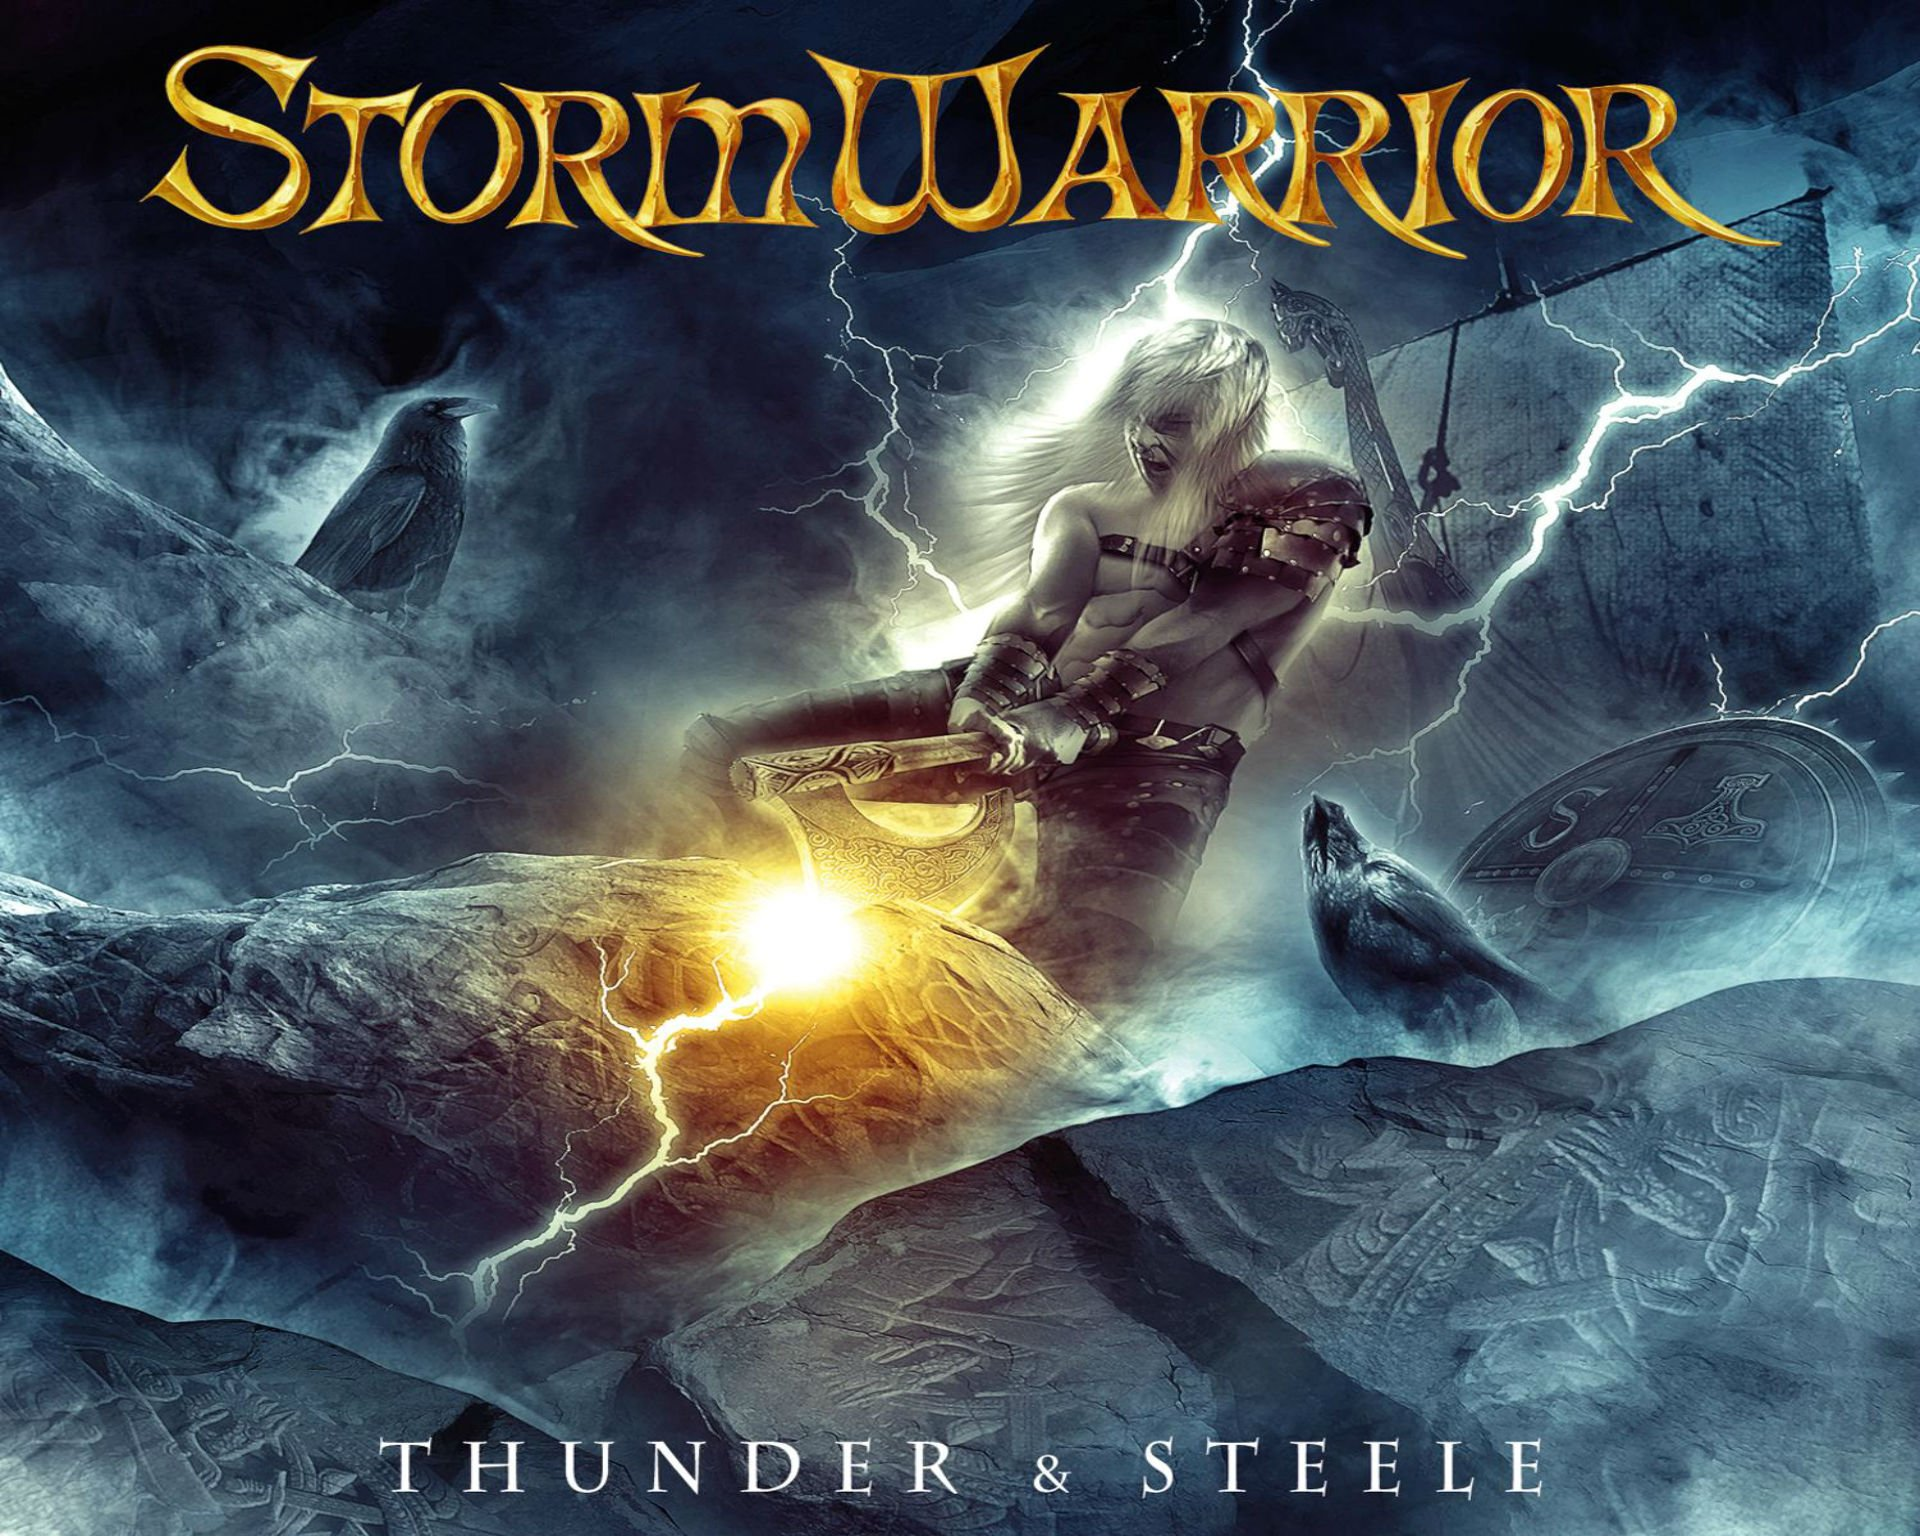 STORMWARRIOR speed power metal heavy fantasy dark warrior